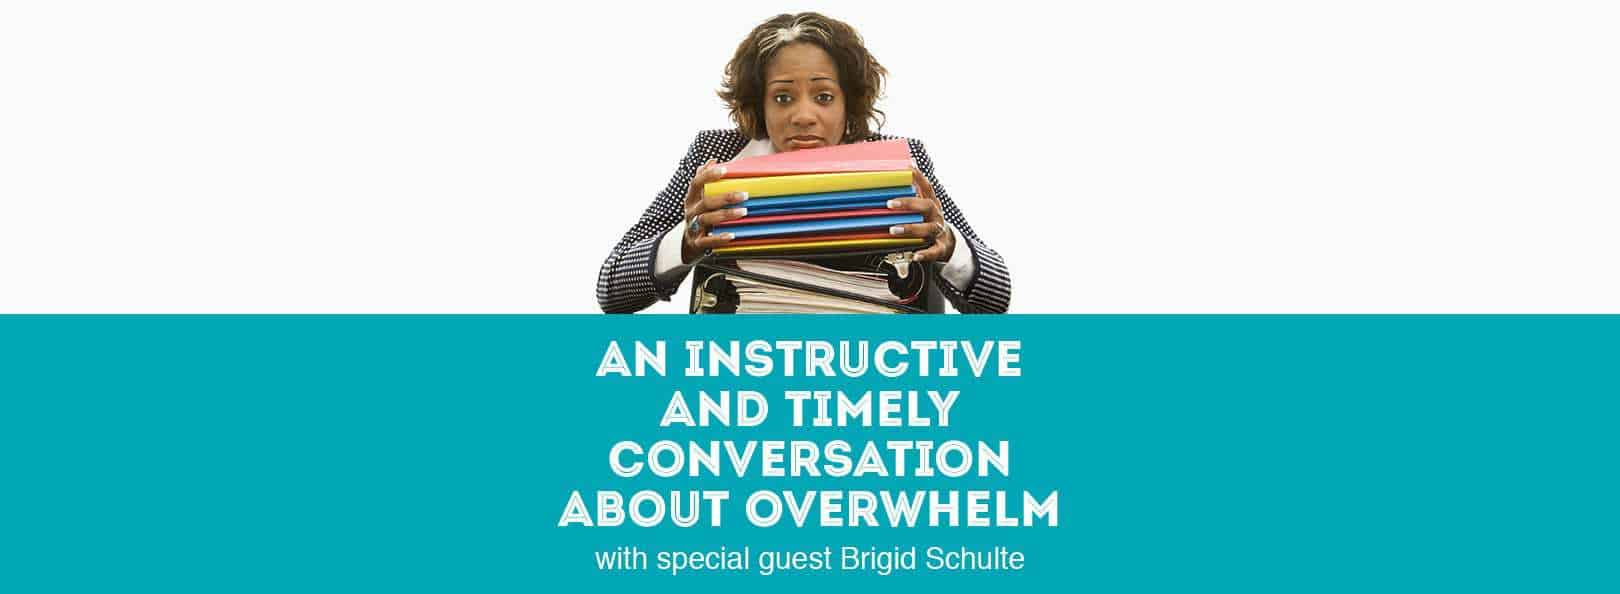 An Instructive and Timely Conversation About Overwhelm with special guest Brigid Schulte